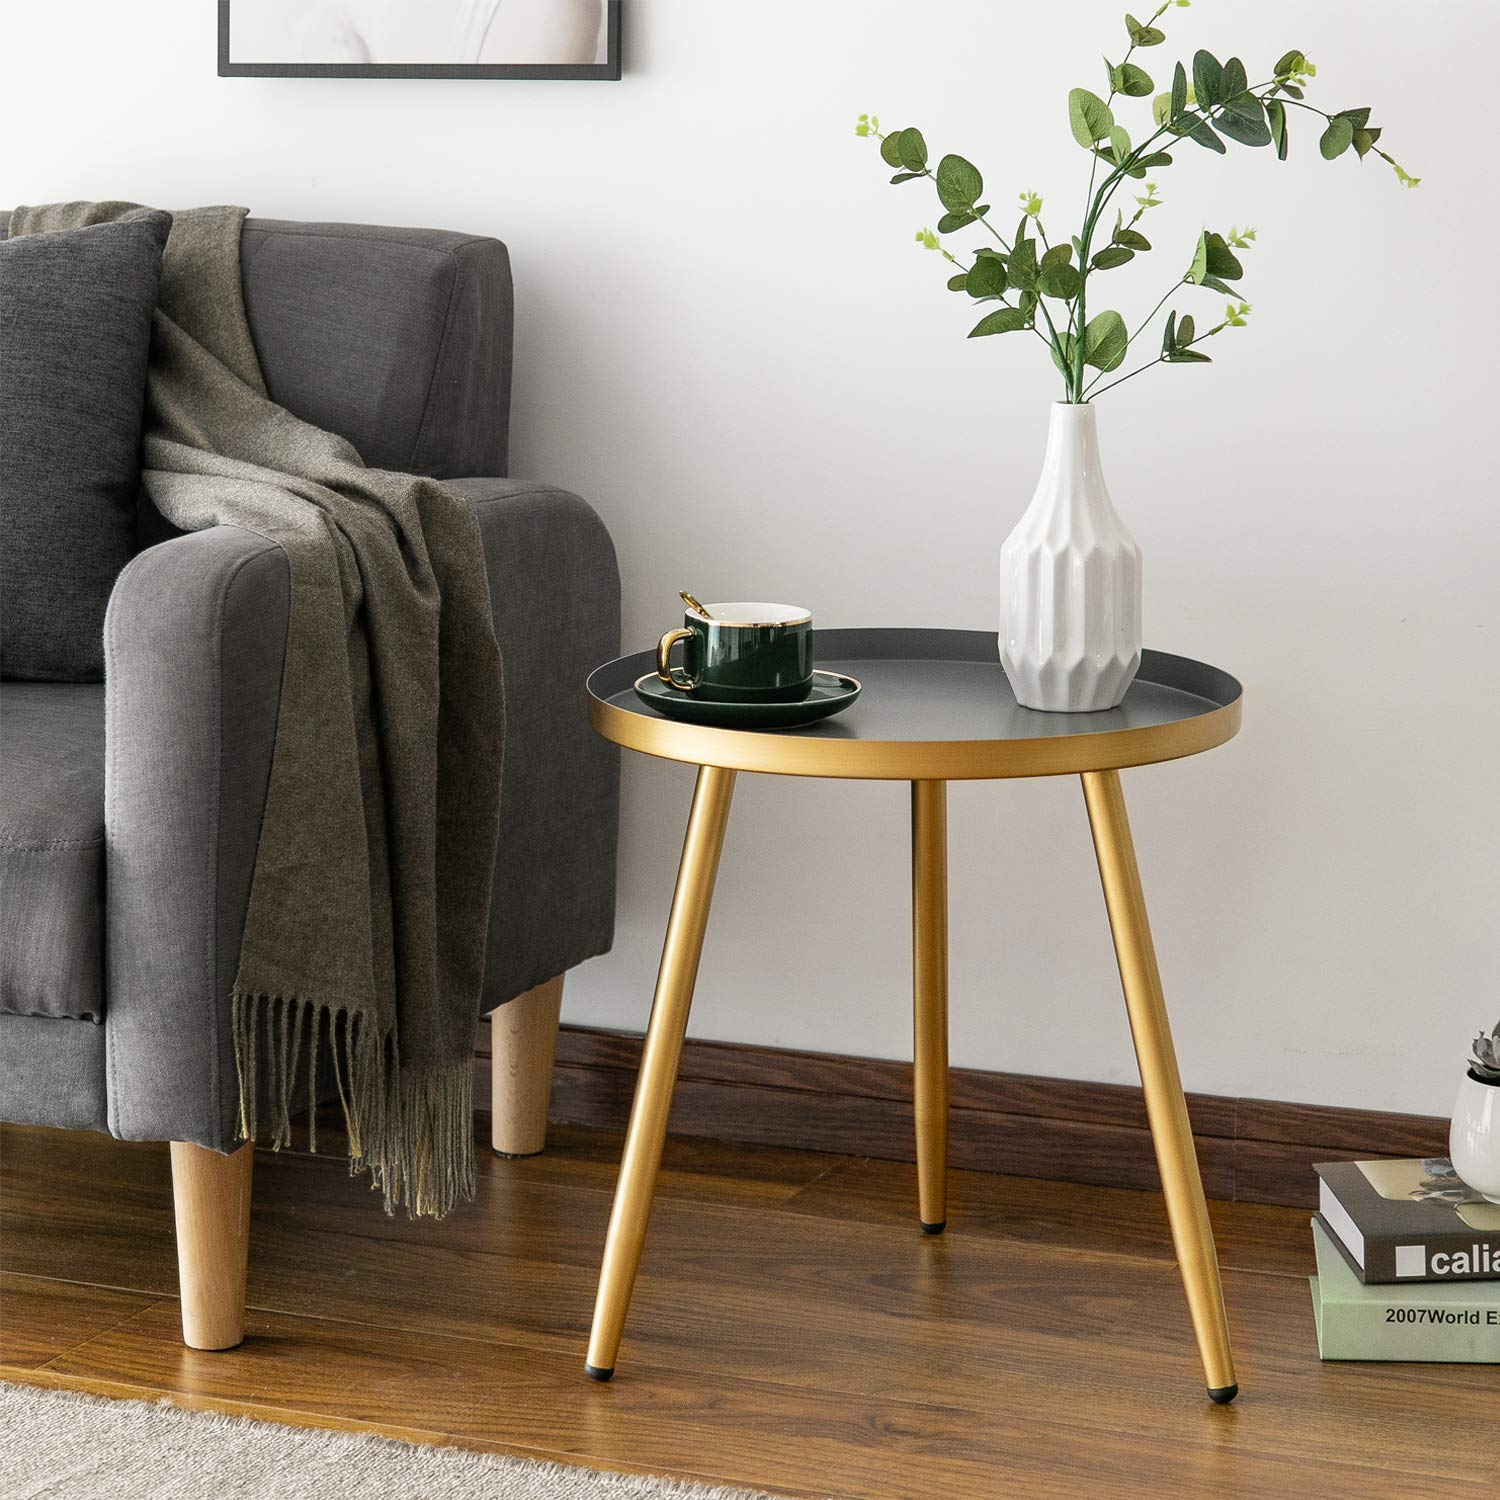 Round Side Table, Metal End Table, Nightstand/Small Tables for Living Room, Accent Tables, Side Table for Small Spaces,Gold & Gray by Aojezor by AOJEZOR